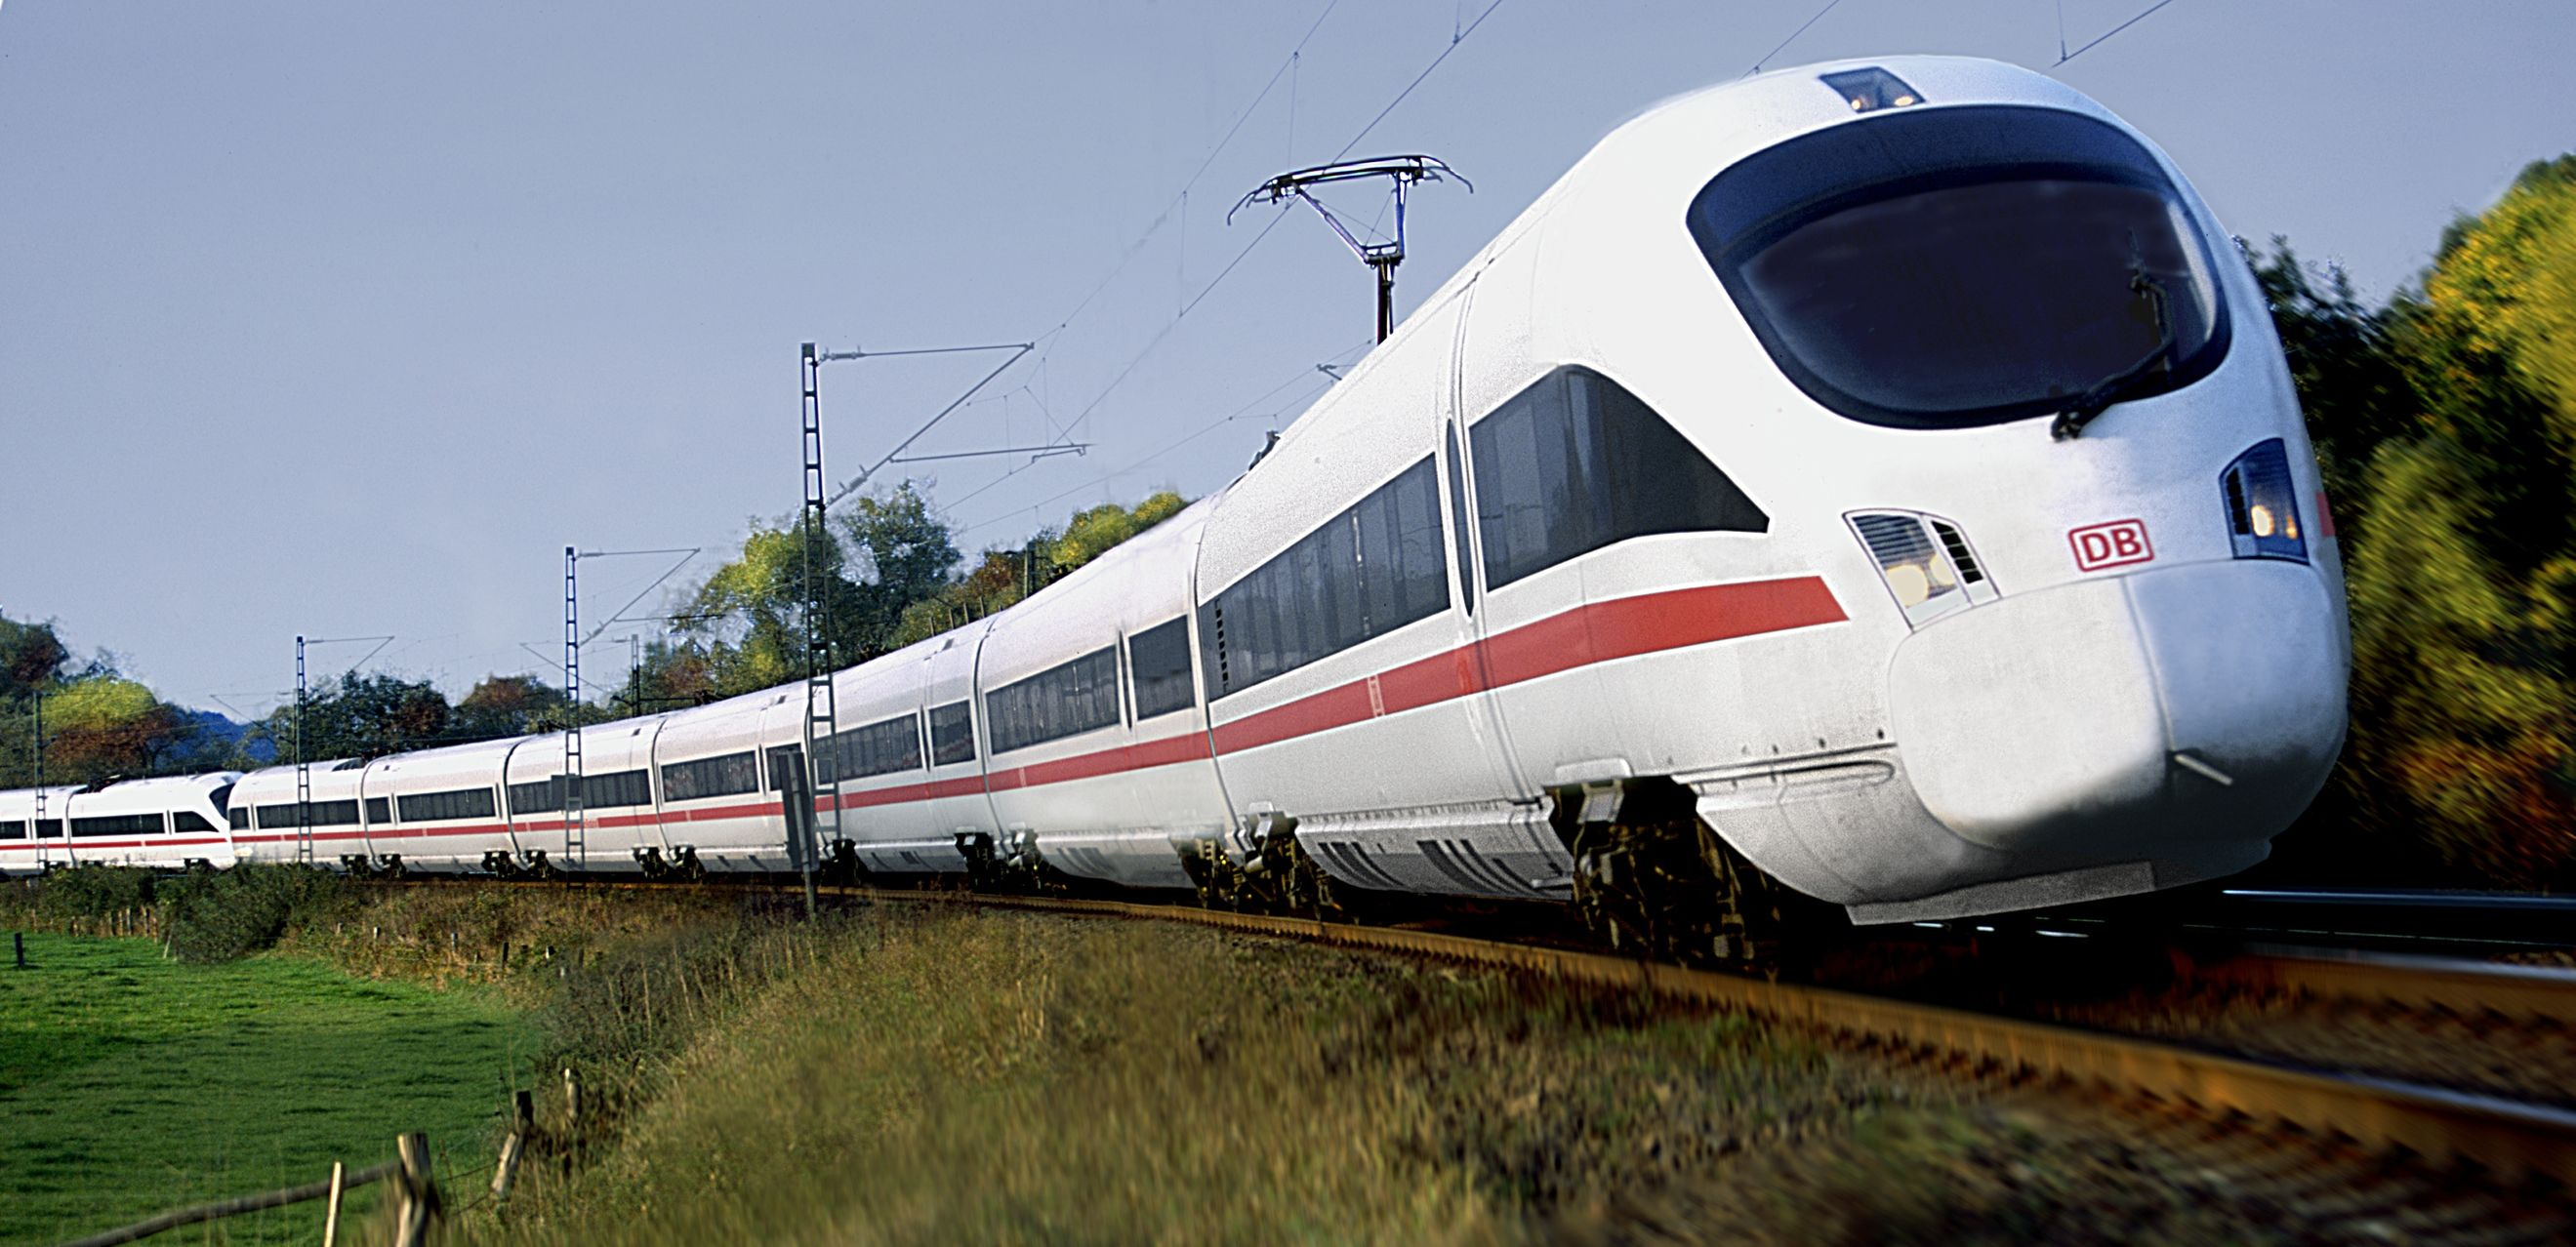 ICE stands for Inter City Express the high speed